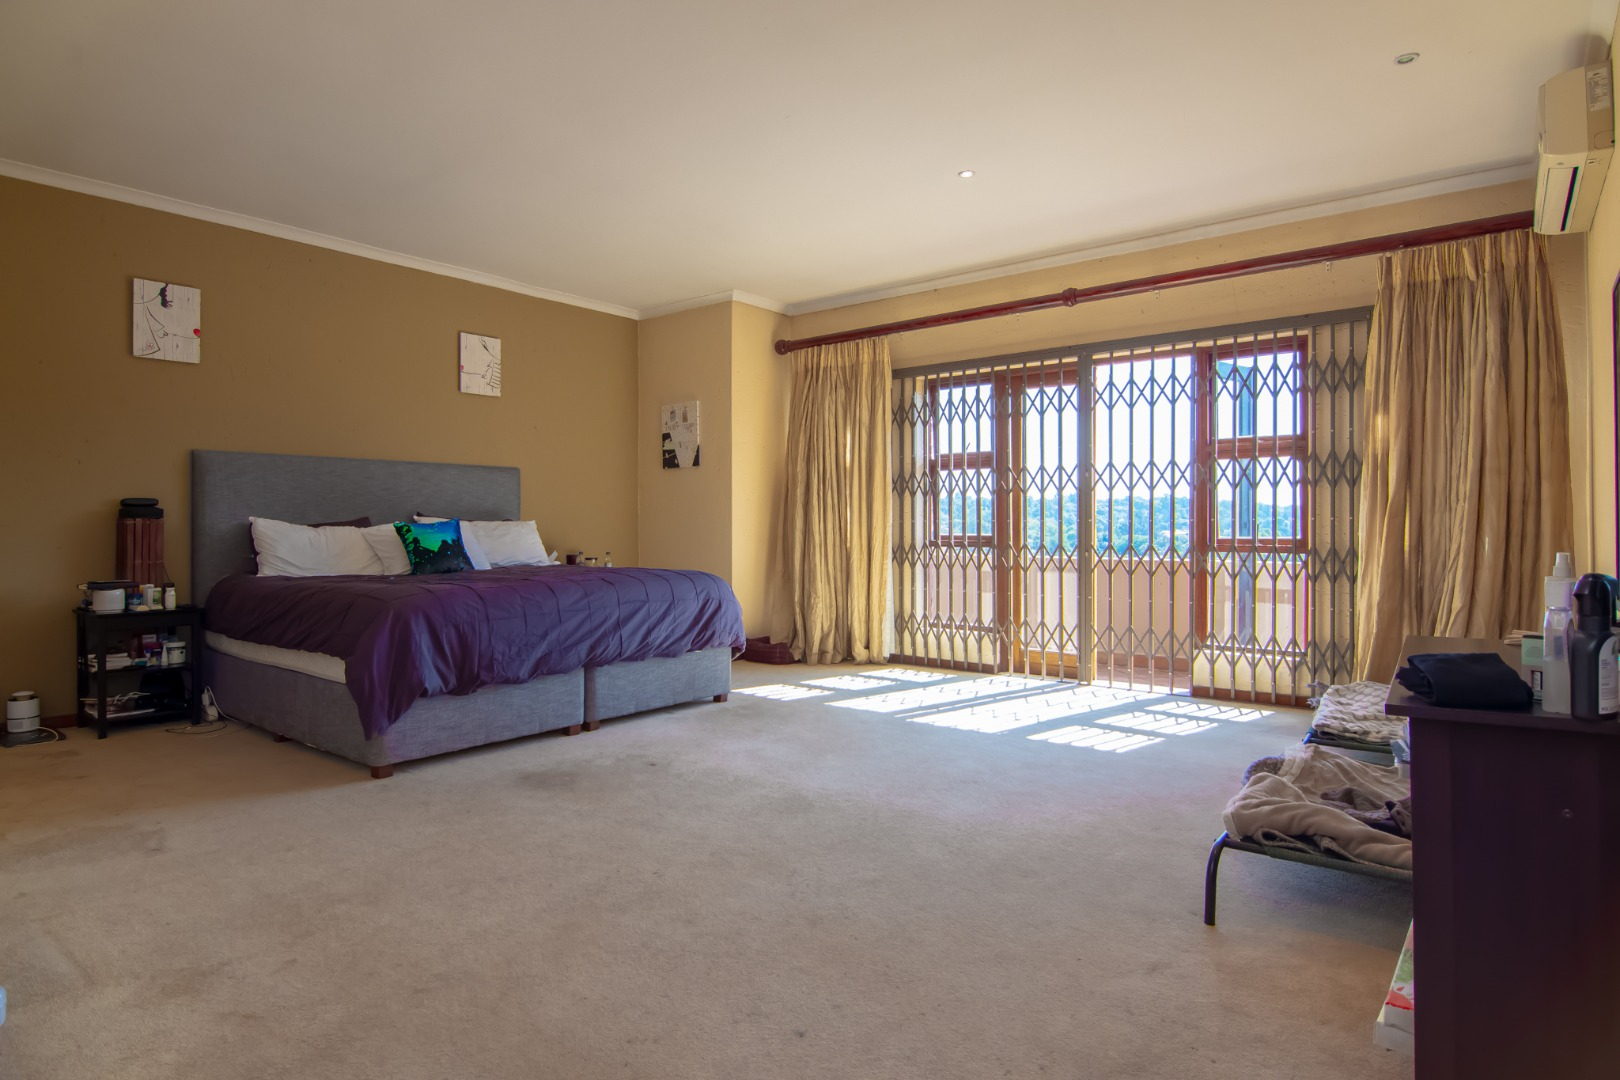 3 Bedroom House For Sale in North Riding AH